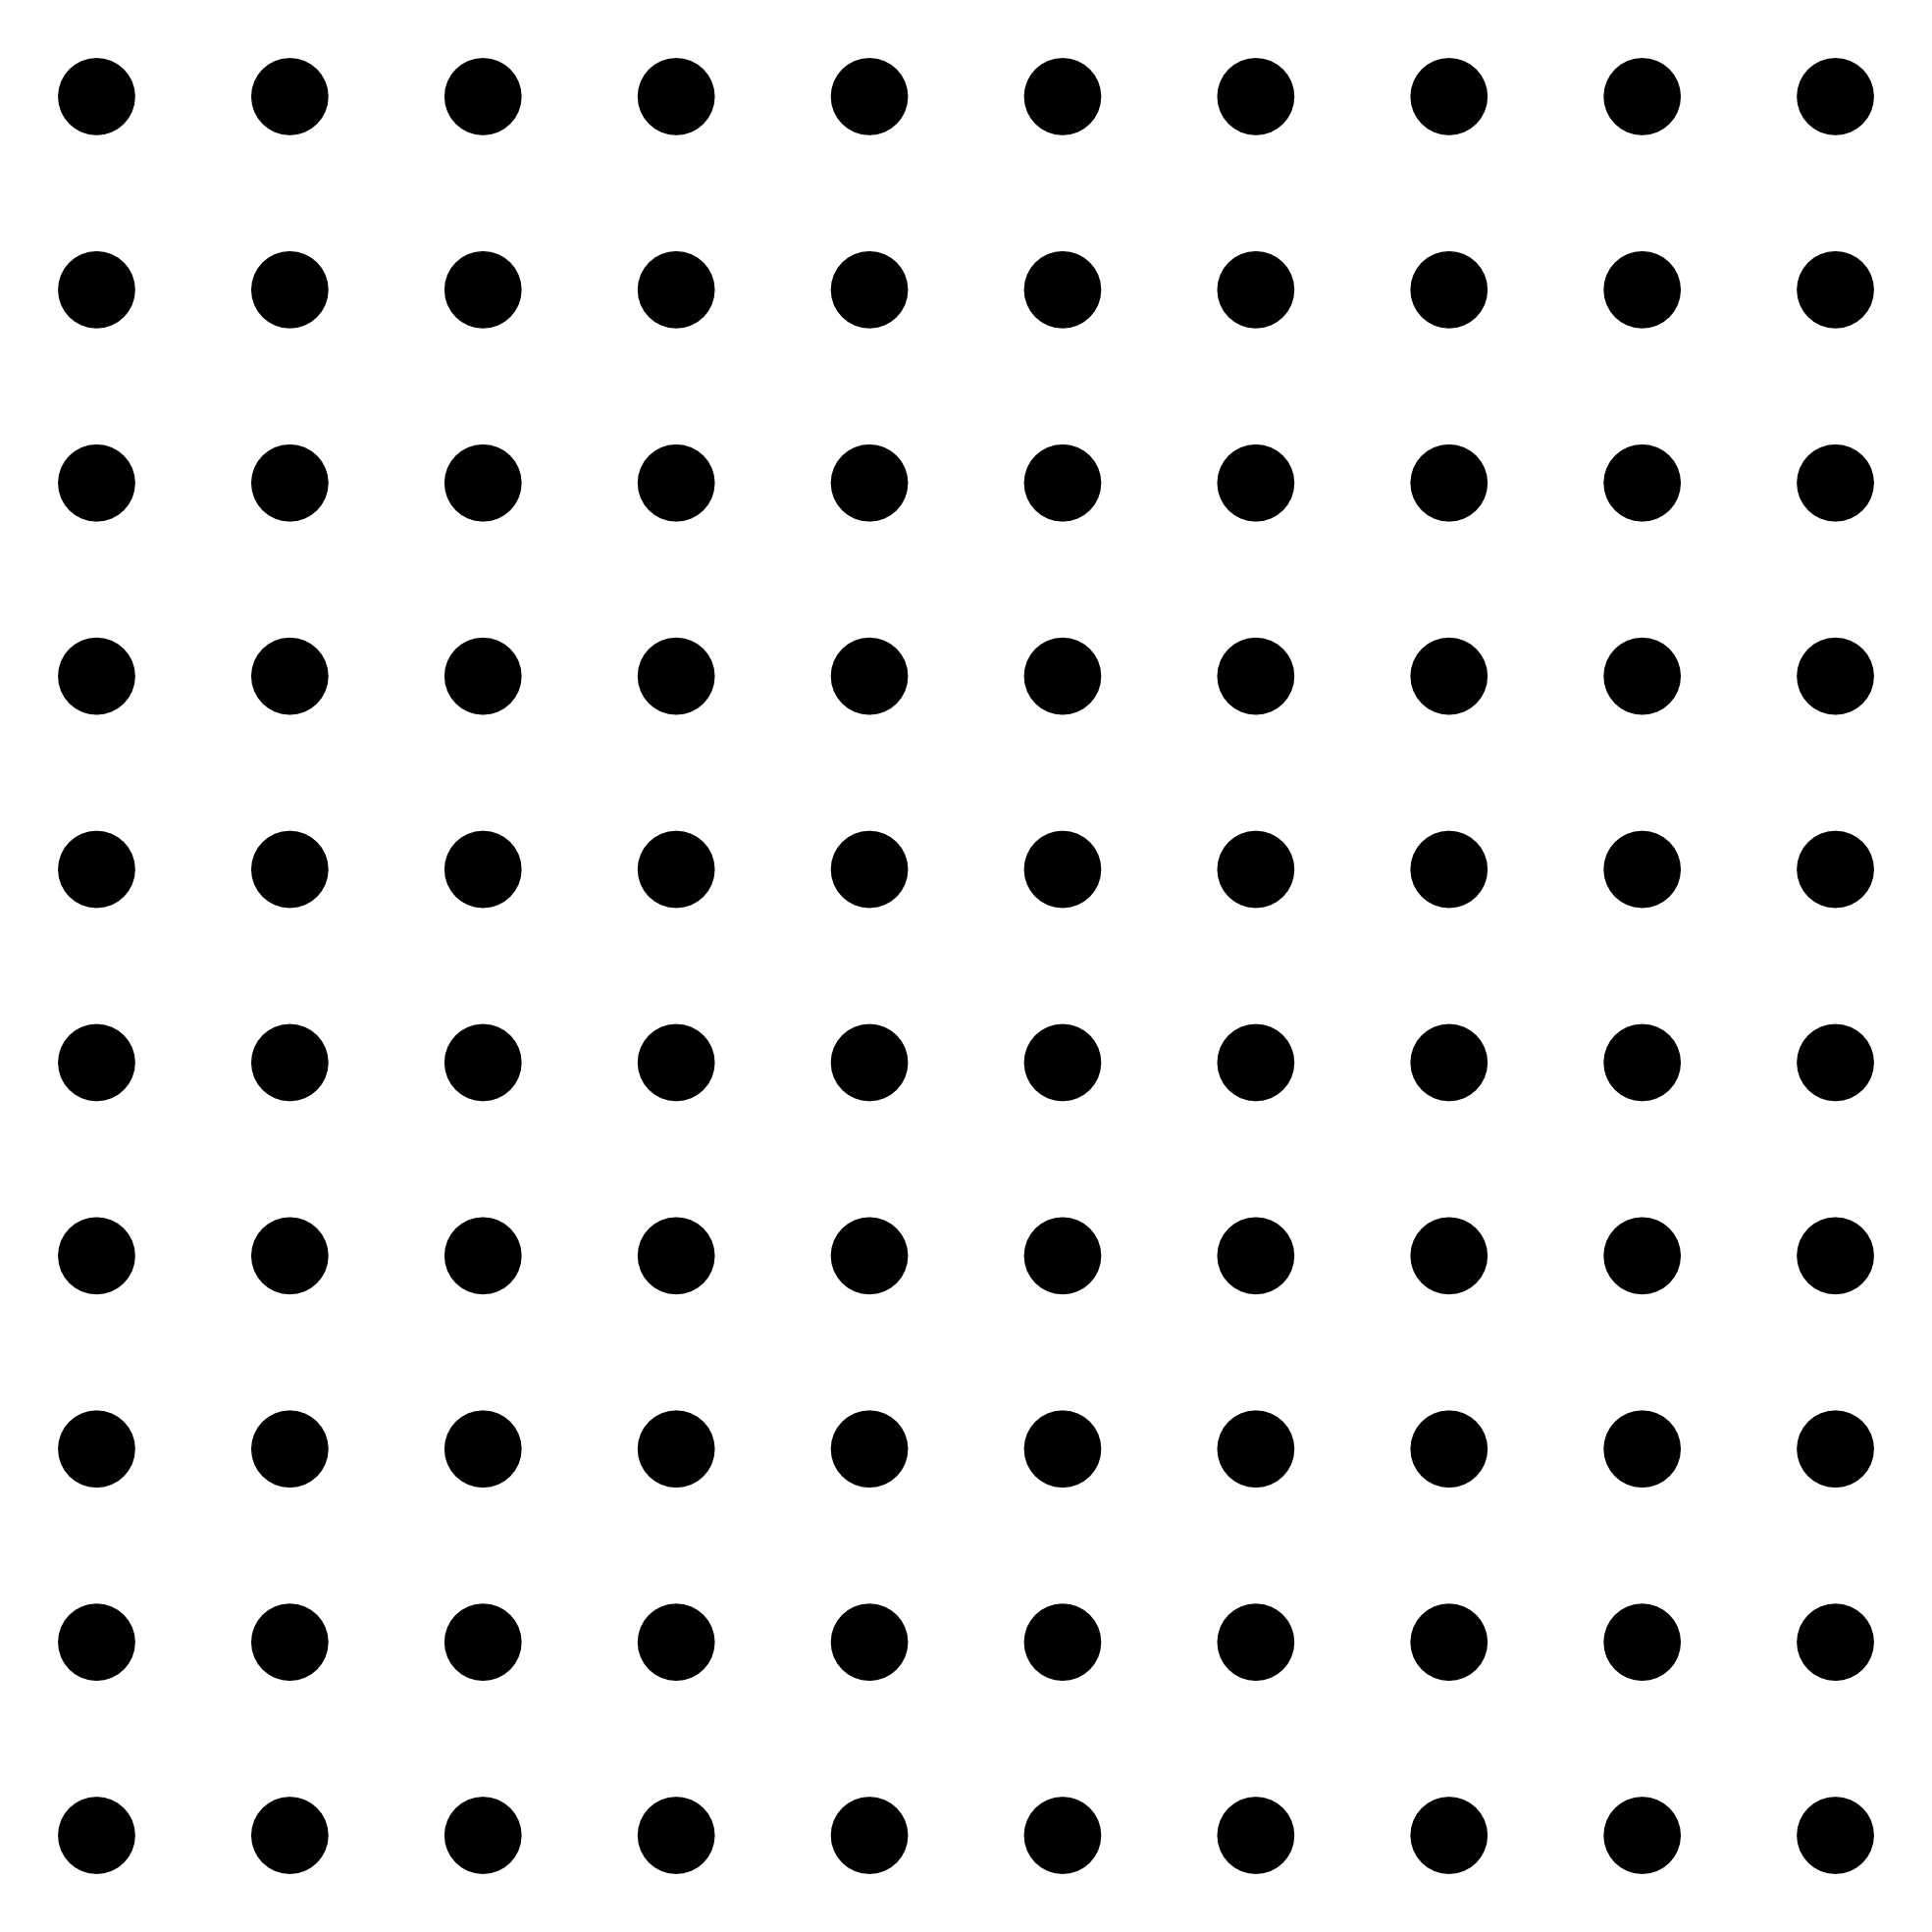 Dot grid clipart transparent download Free Grid Cliparts, Download Free Clip Art, Free Clip Art on Clipart ... transparent download